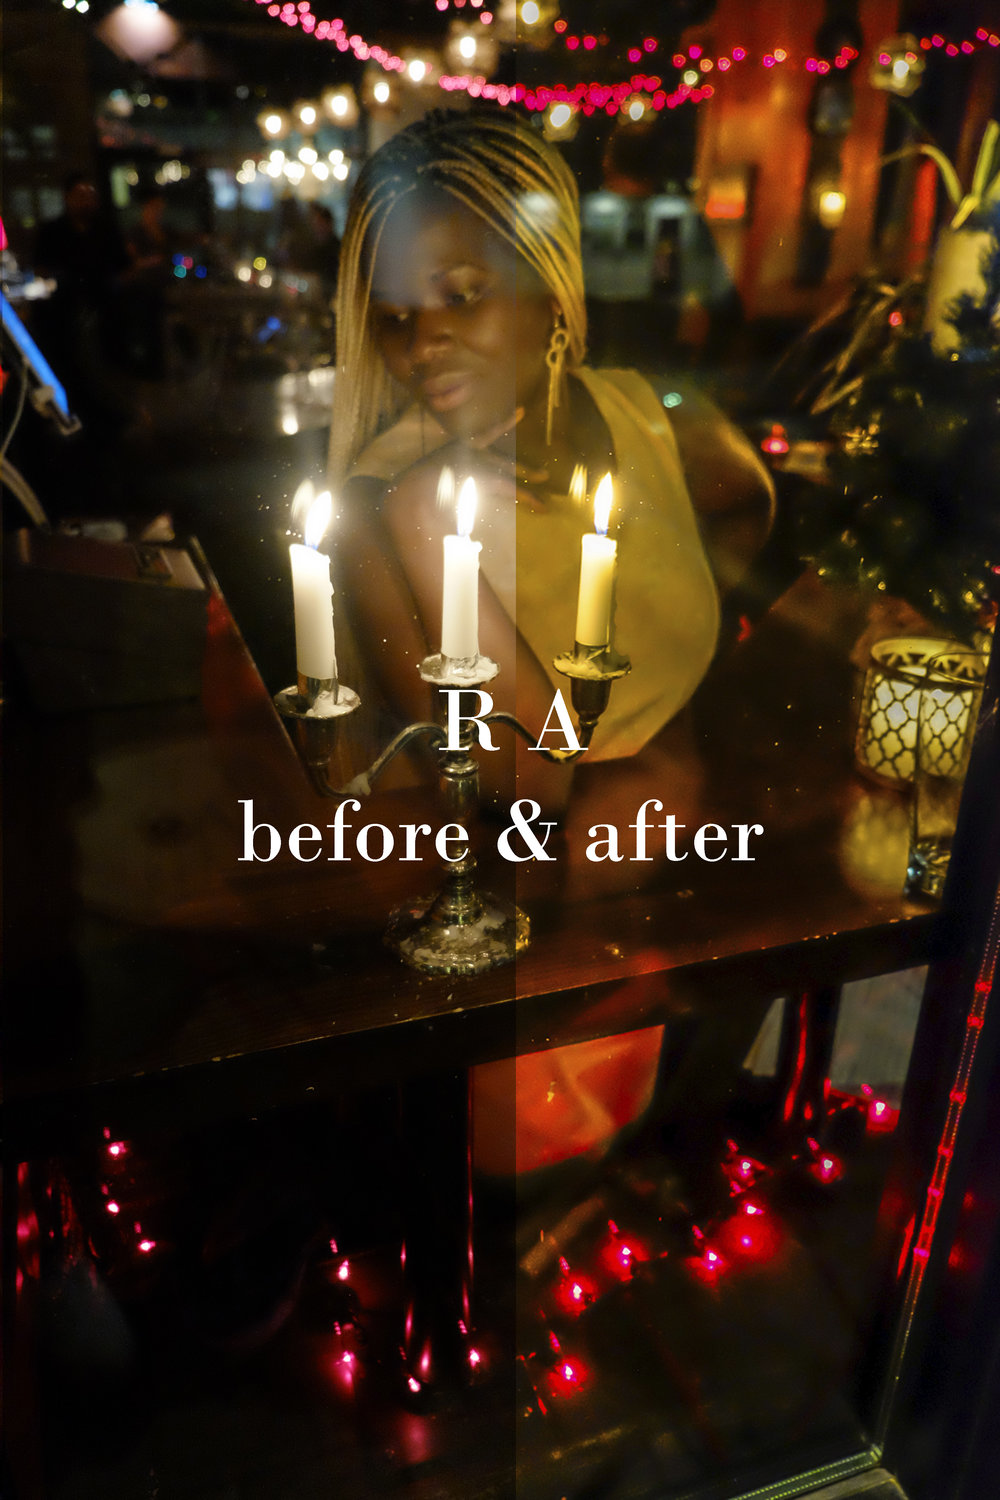 RA before & after (candle lit).jpg